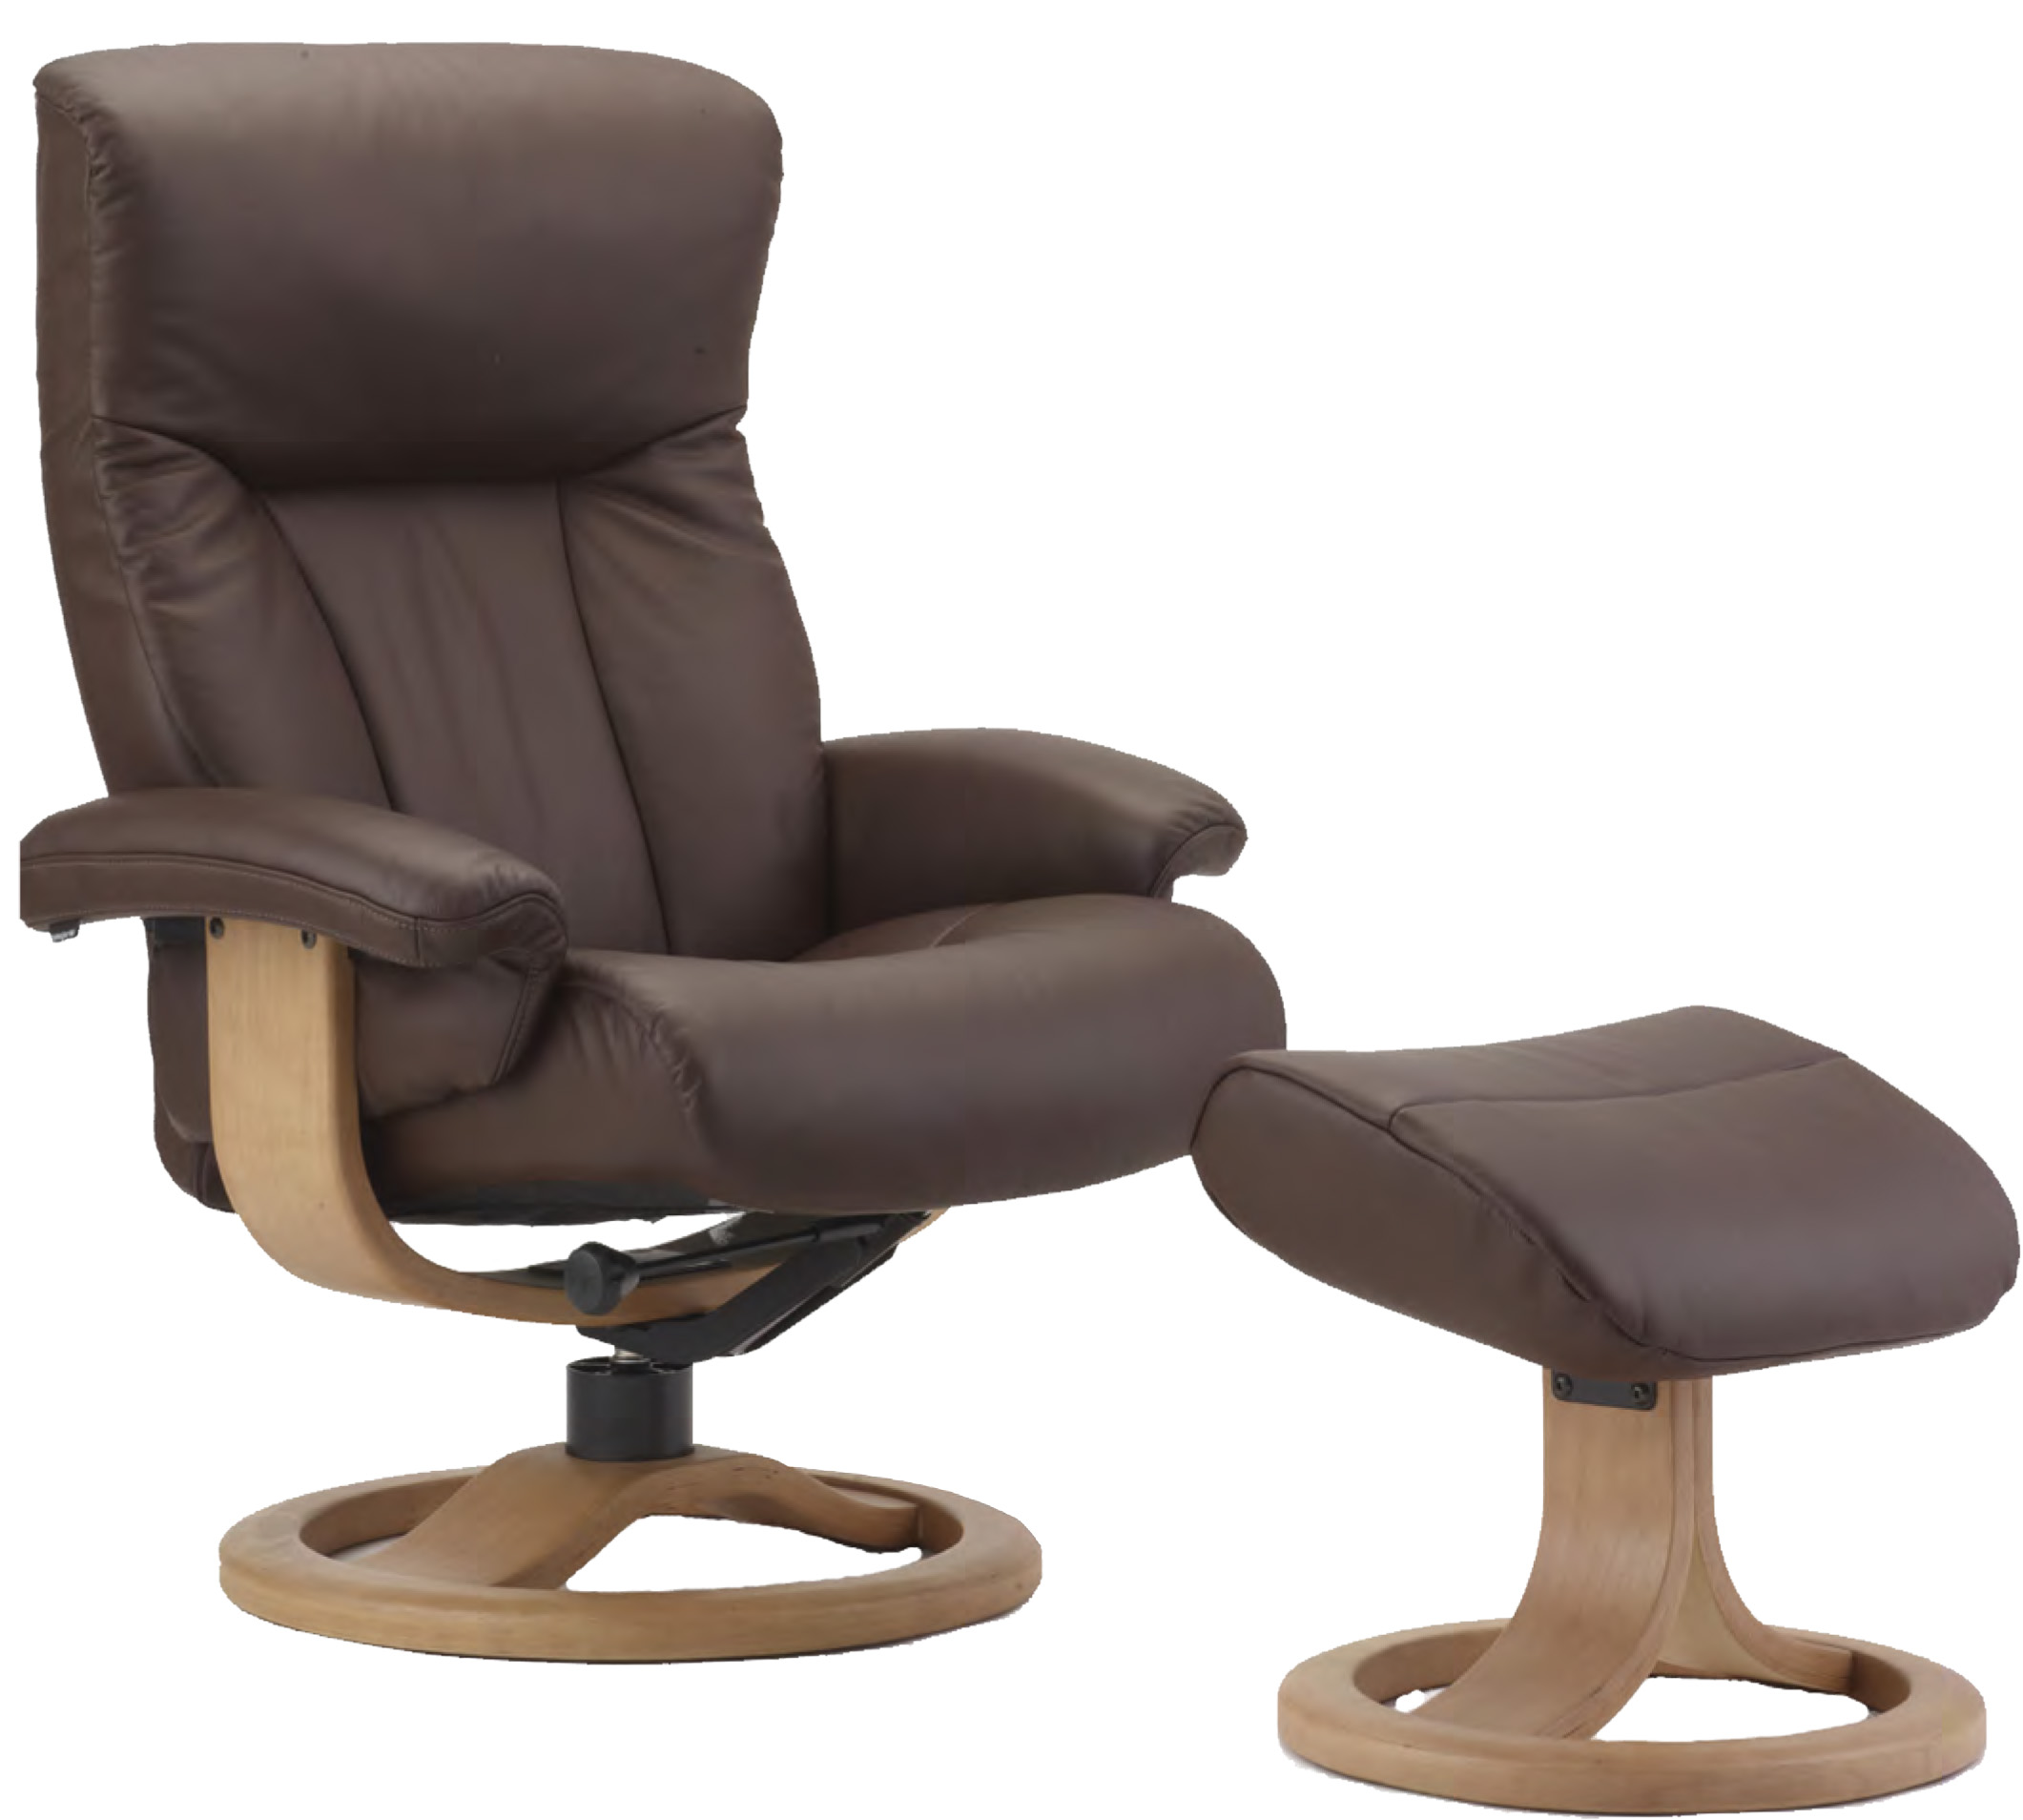 Scandinavian Chair Fjords Scandic Ergonomic Leather Recliner Chair 43 Ottoman